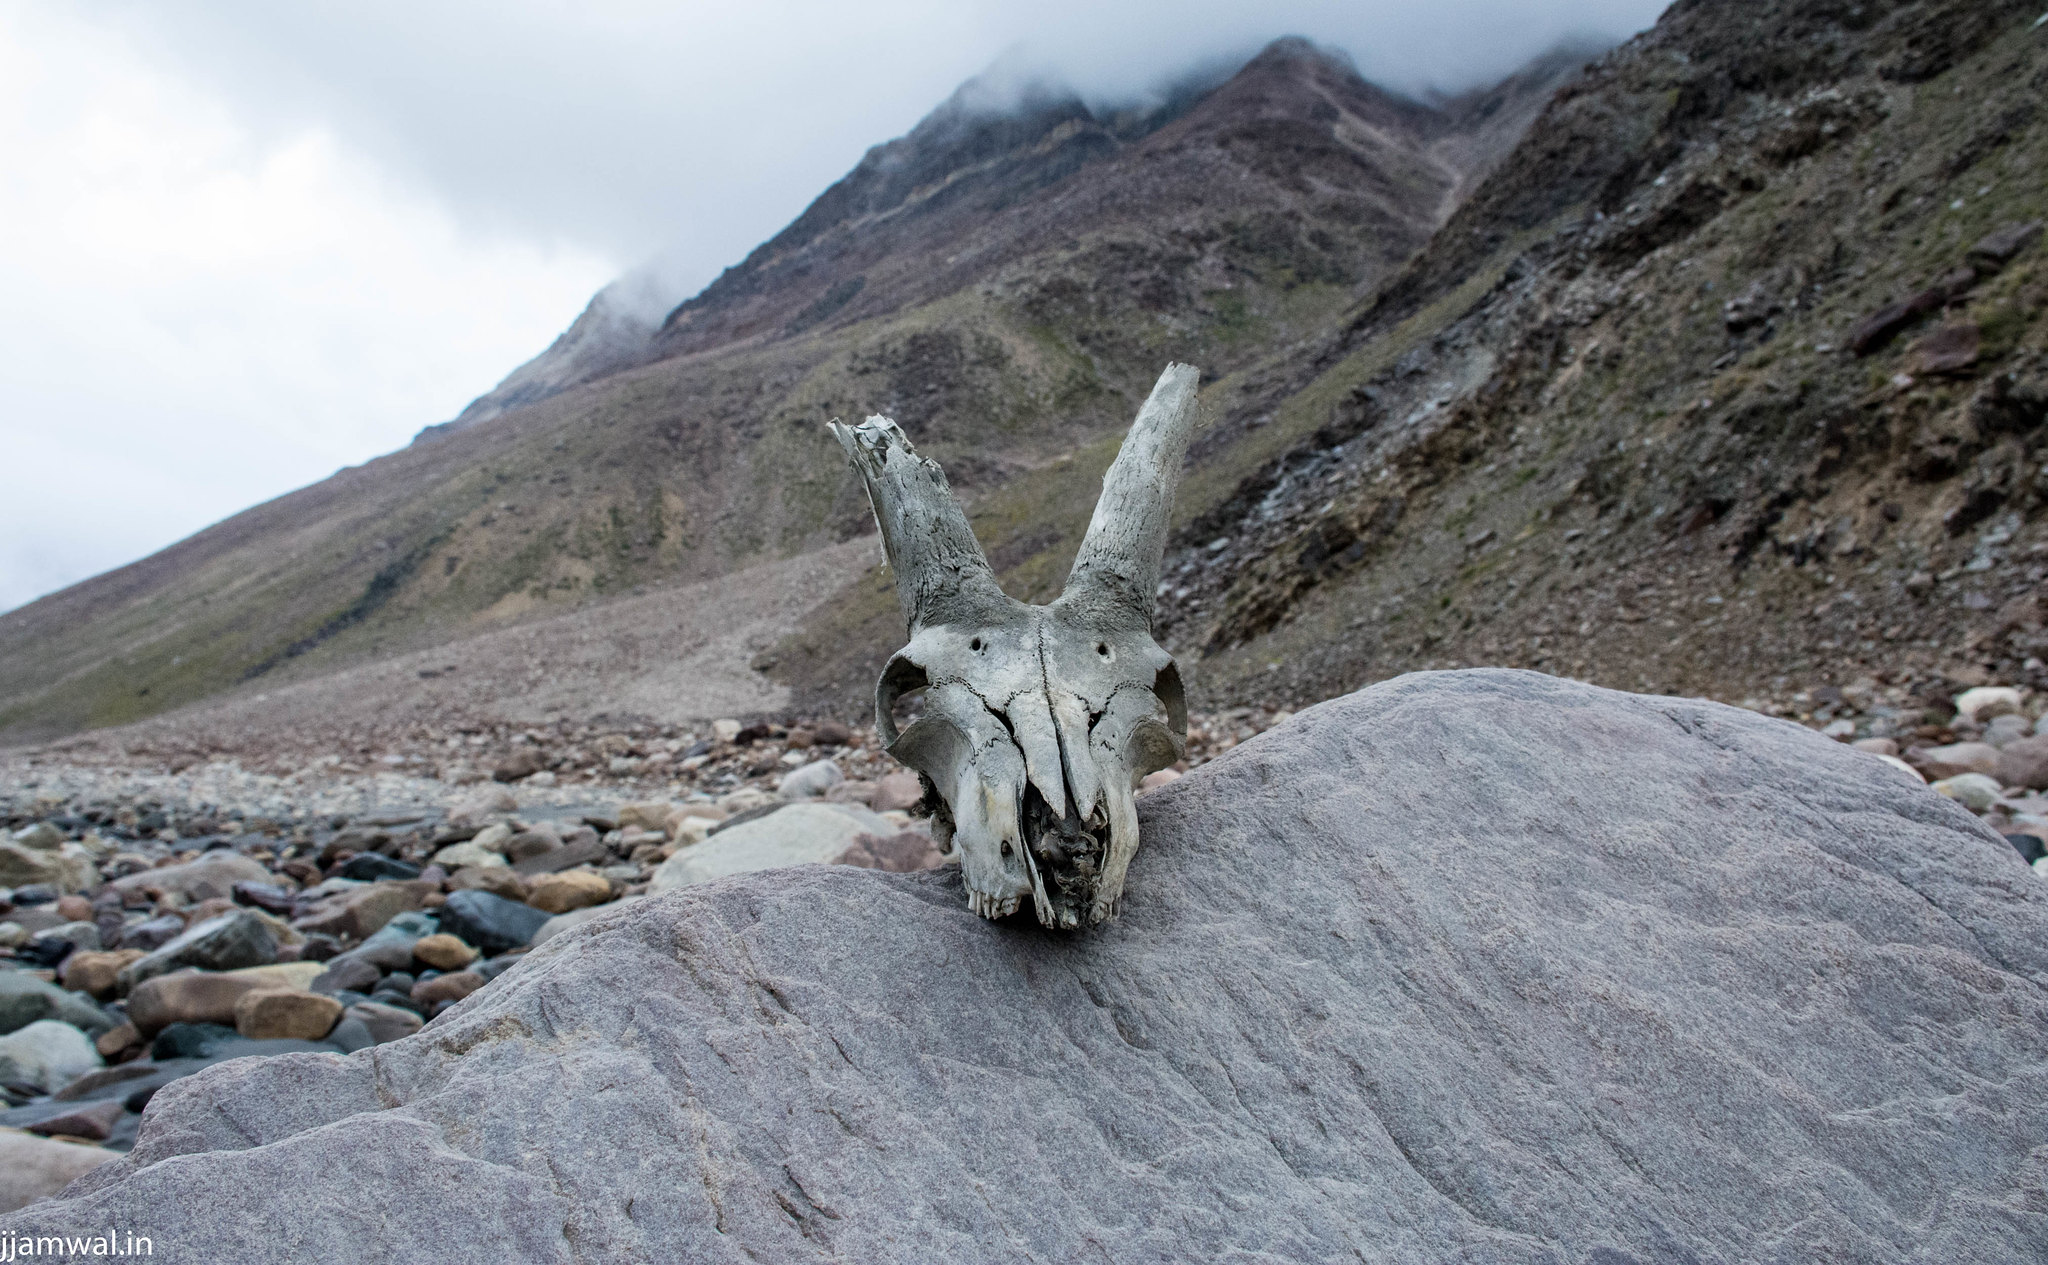 I just placed this skull on this rock to take the picture.